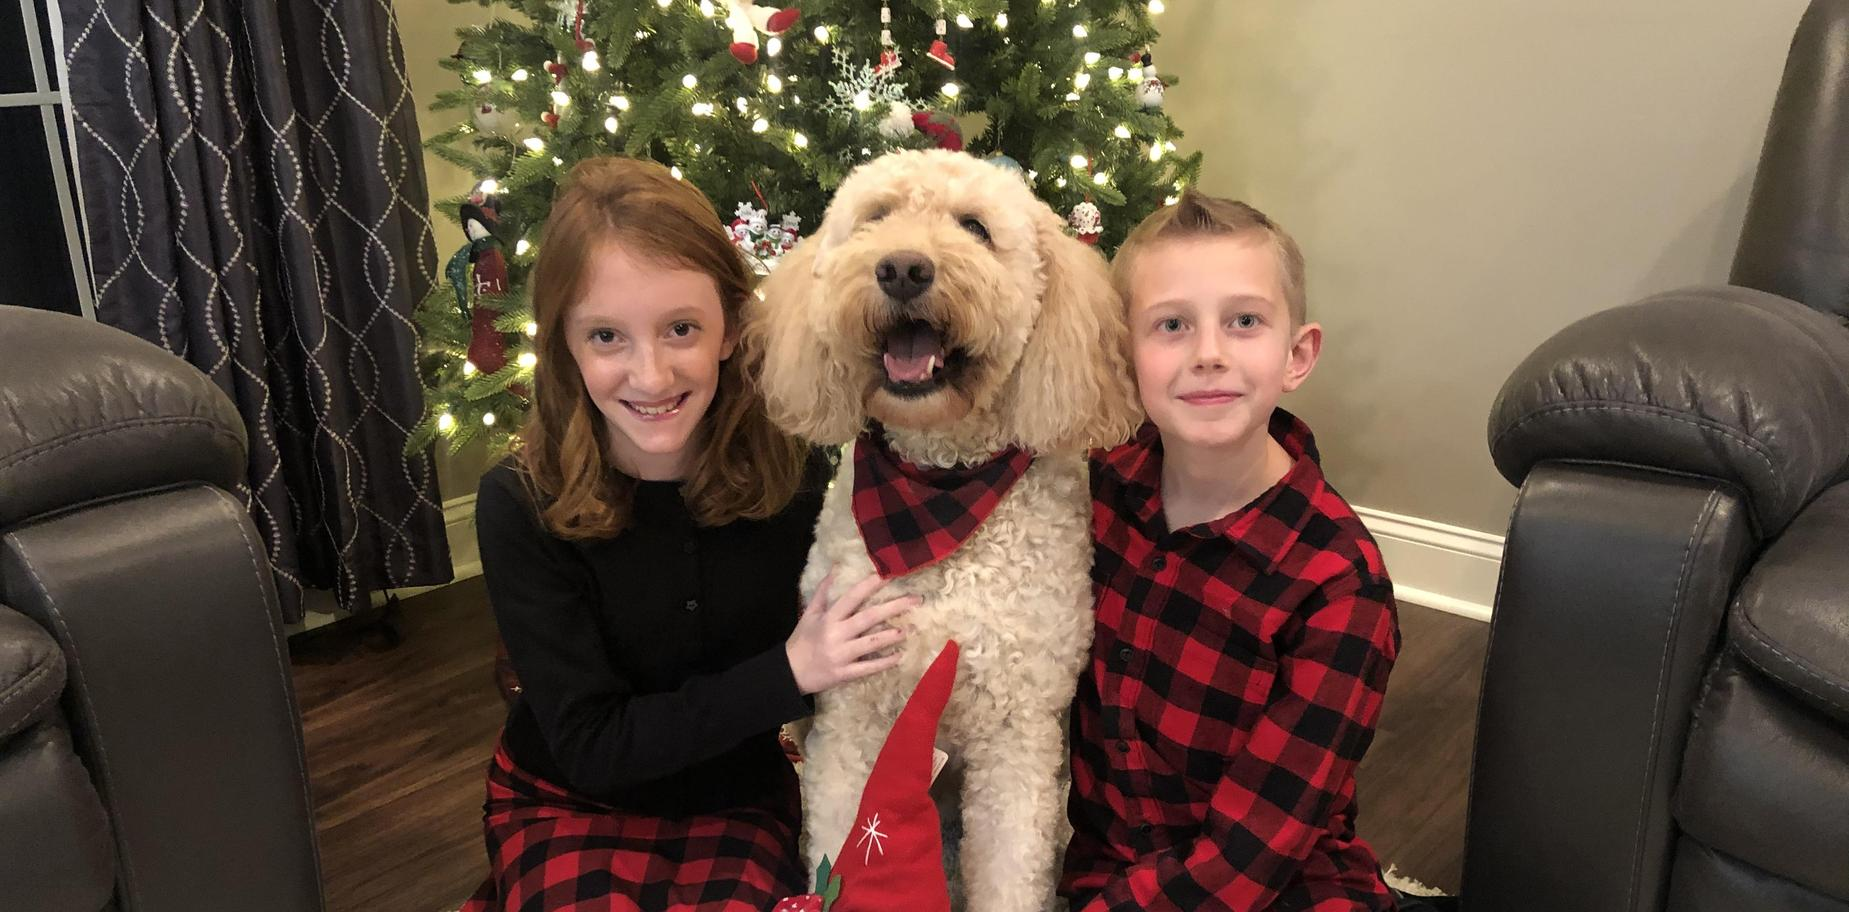 kids with their dog in holiday attire